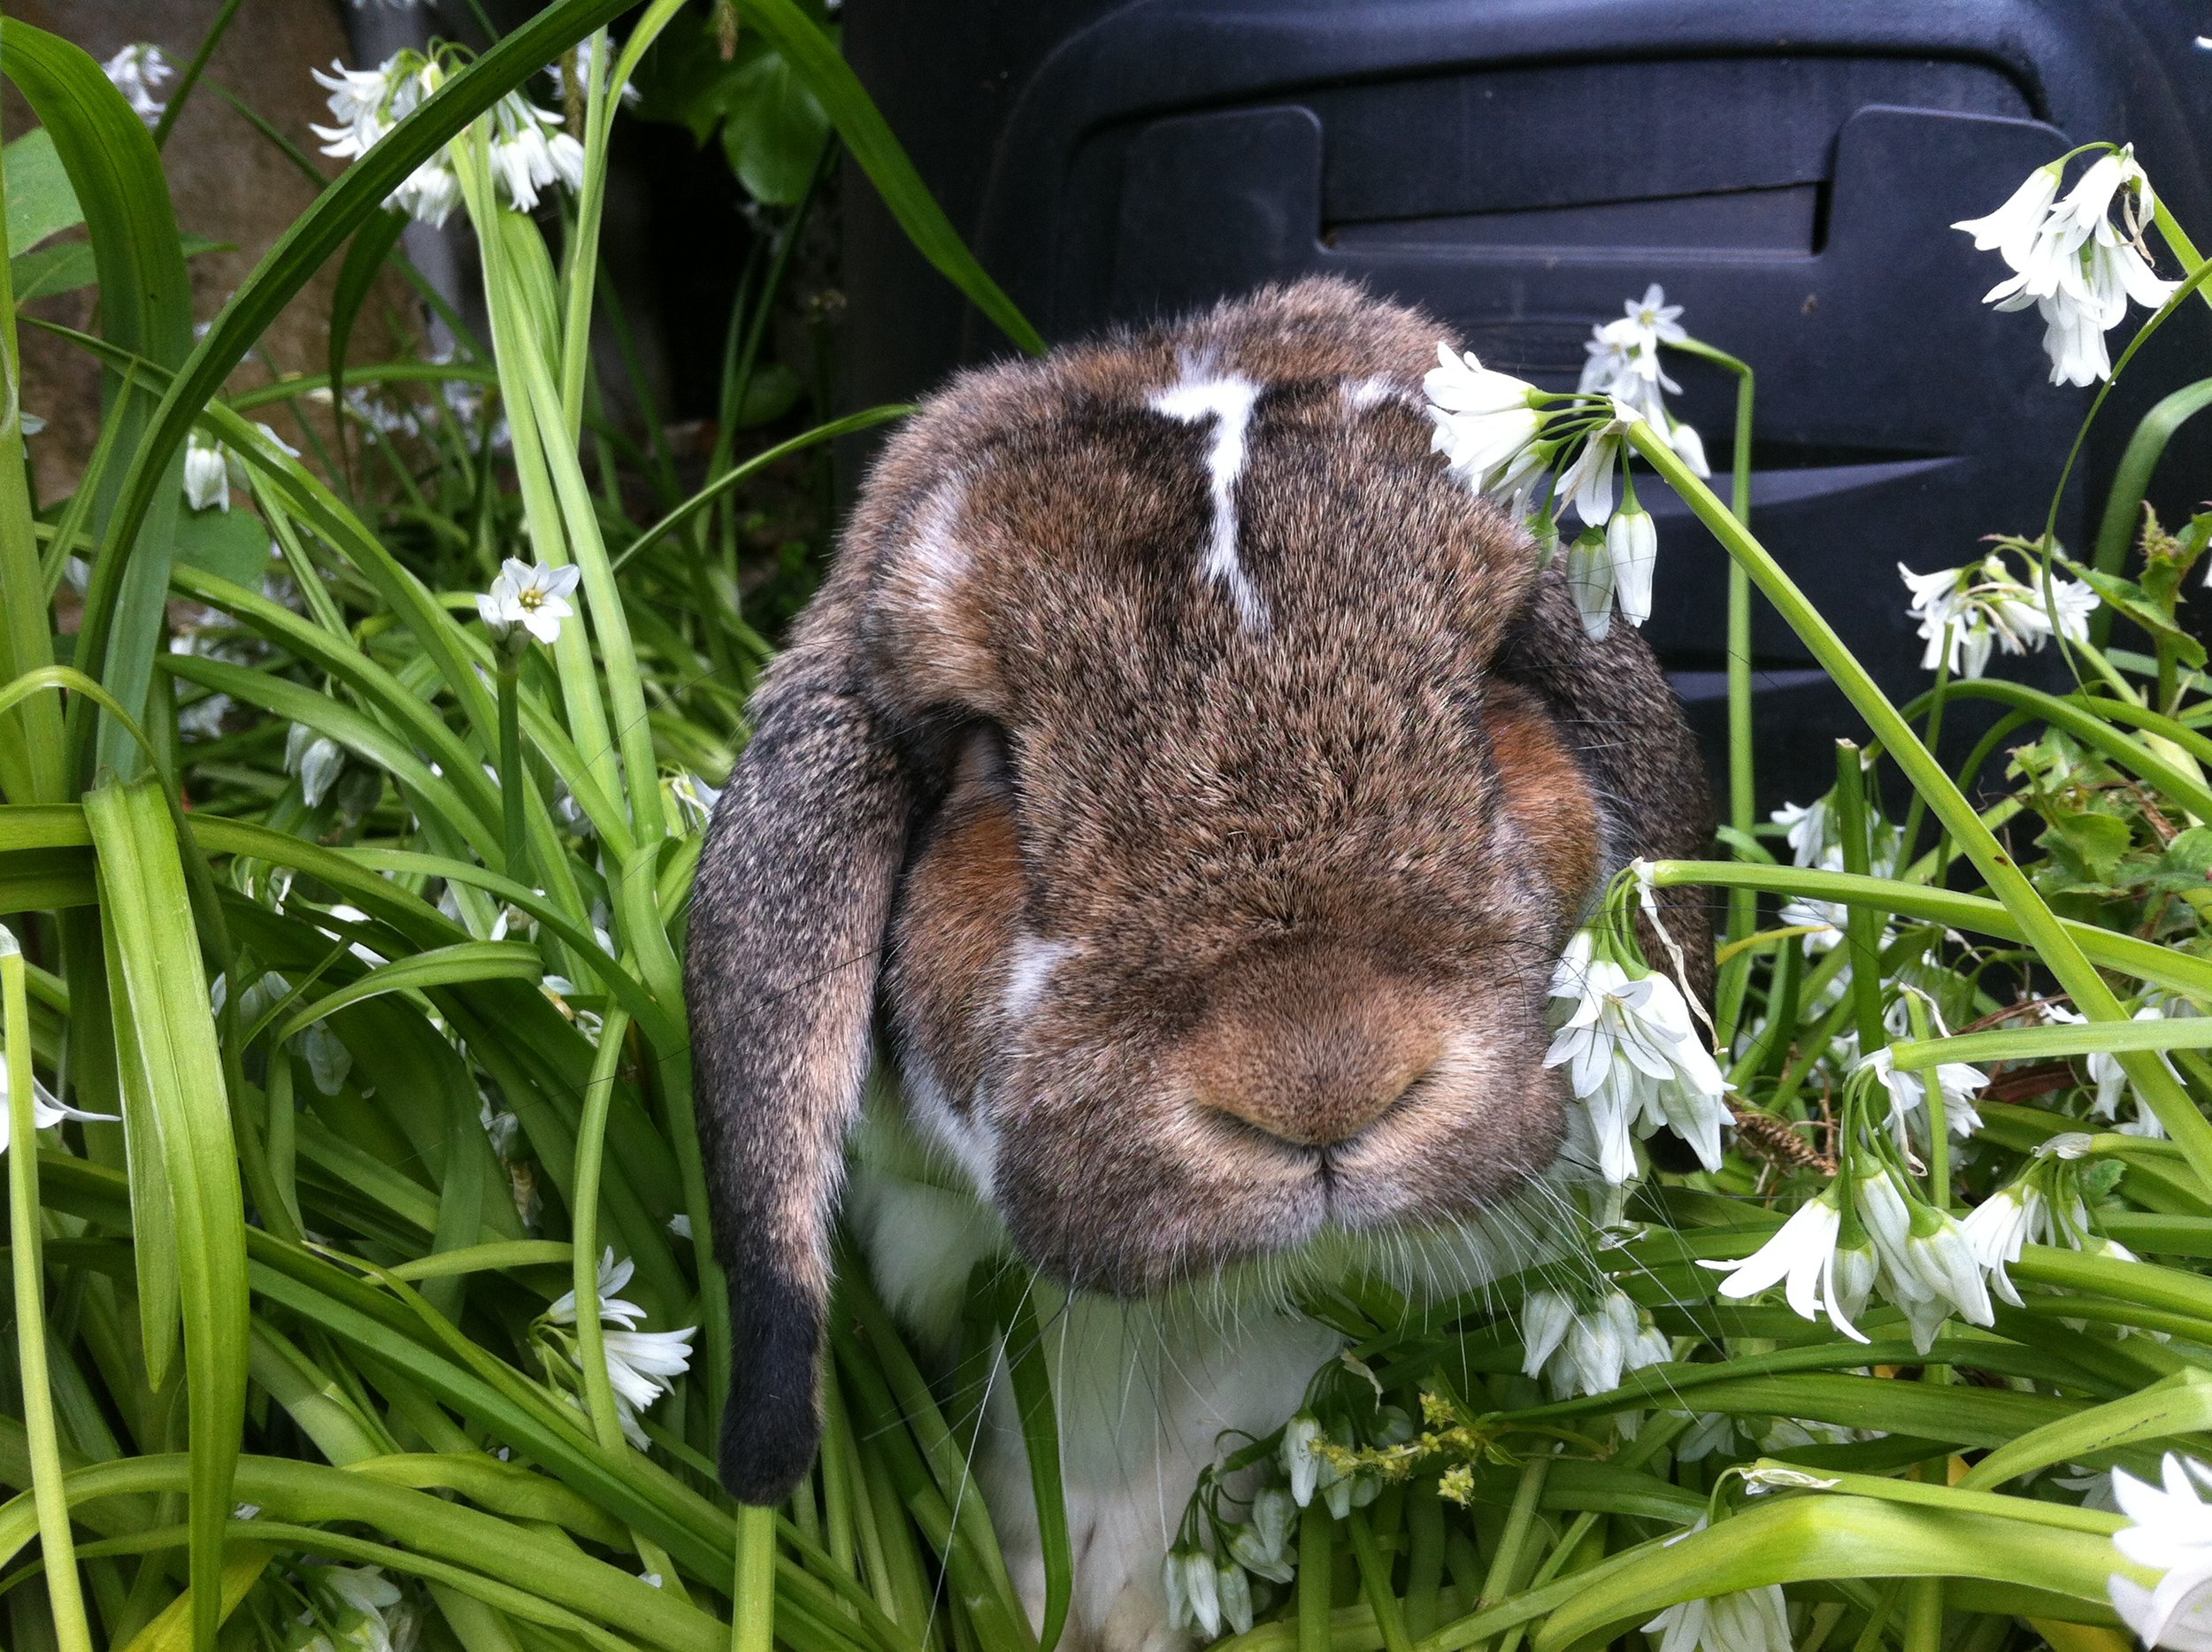 Bunny Breaks through the Tall Grass and Flowers to Nose Up to the Camera